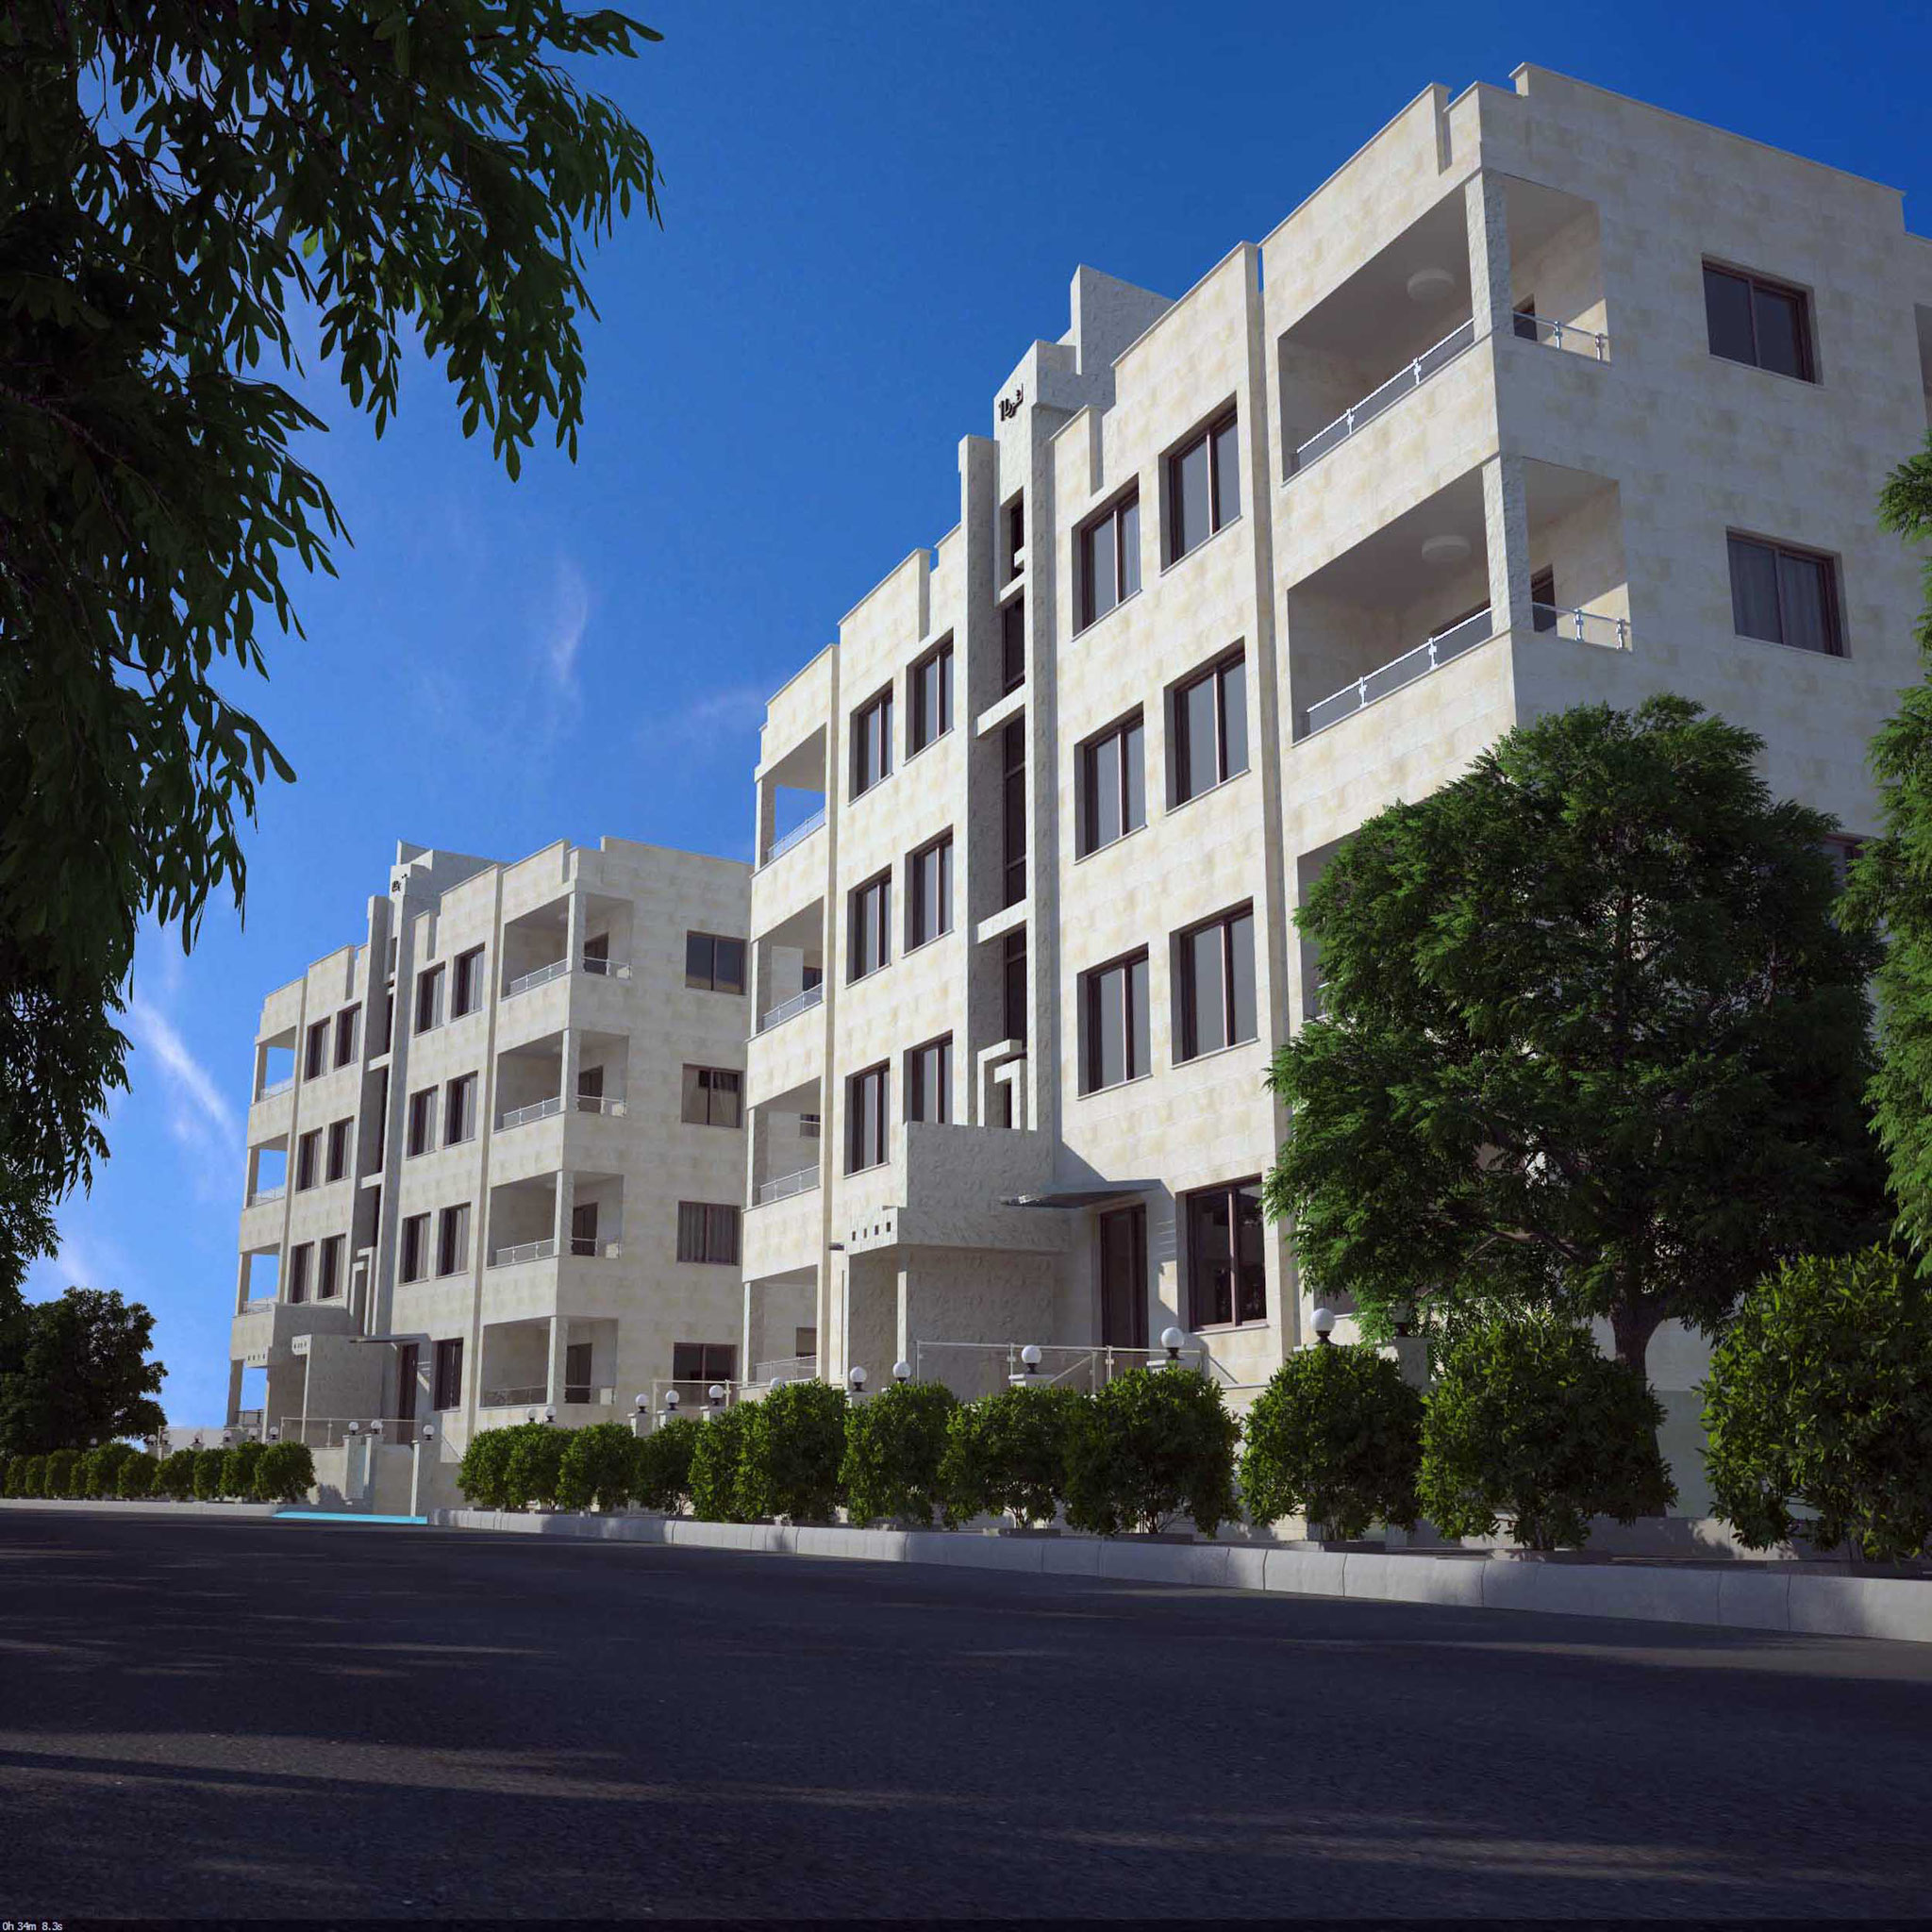 H. A. Housing Co  - Complex 1 & 2  Yasmin quarter - Jordan